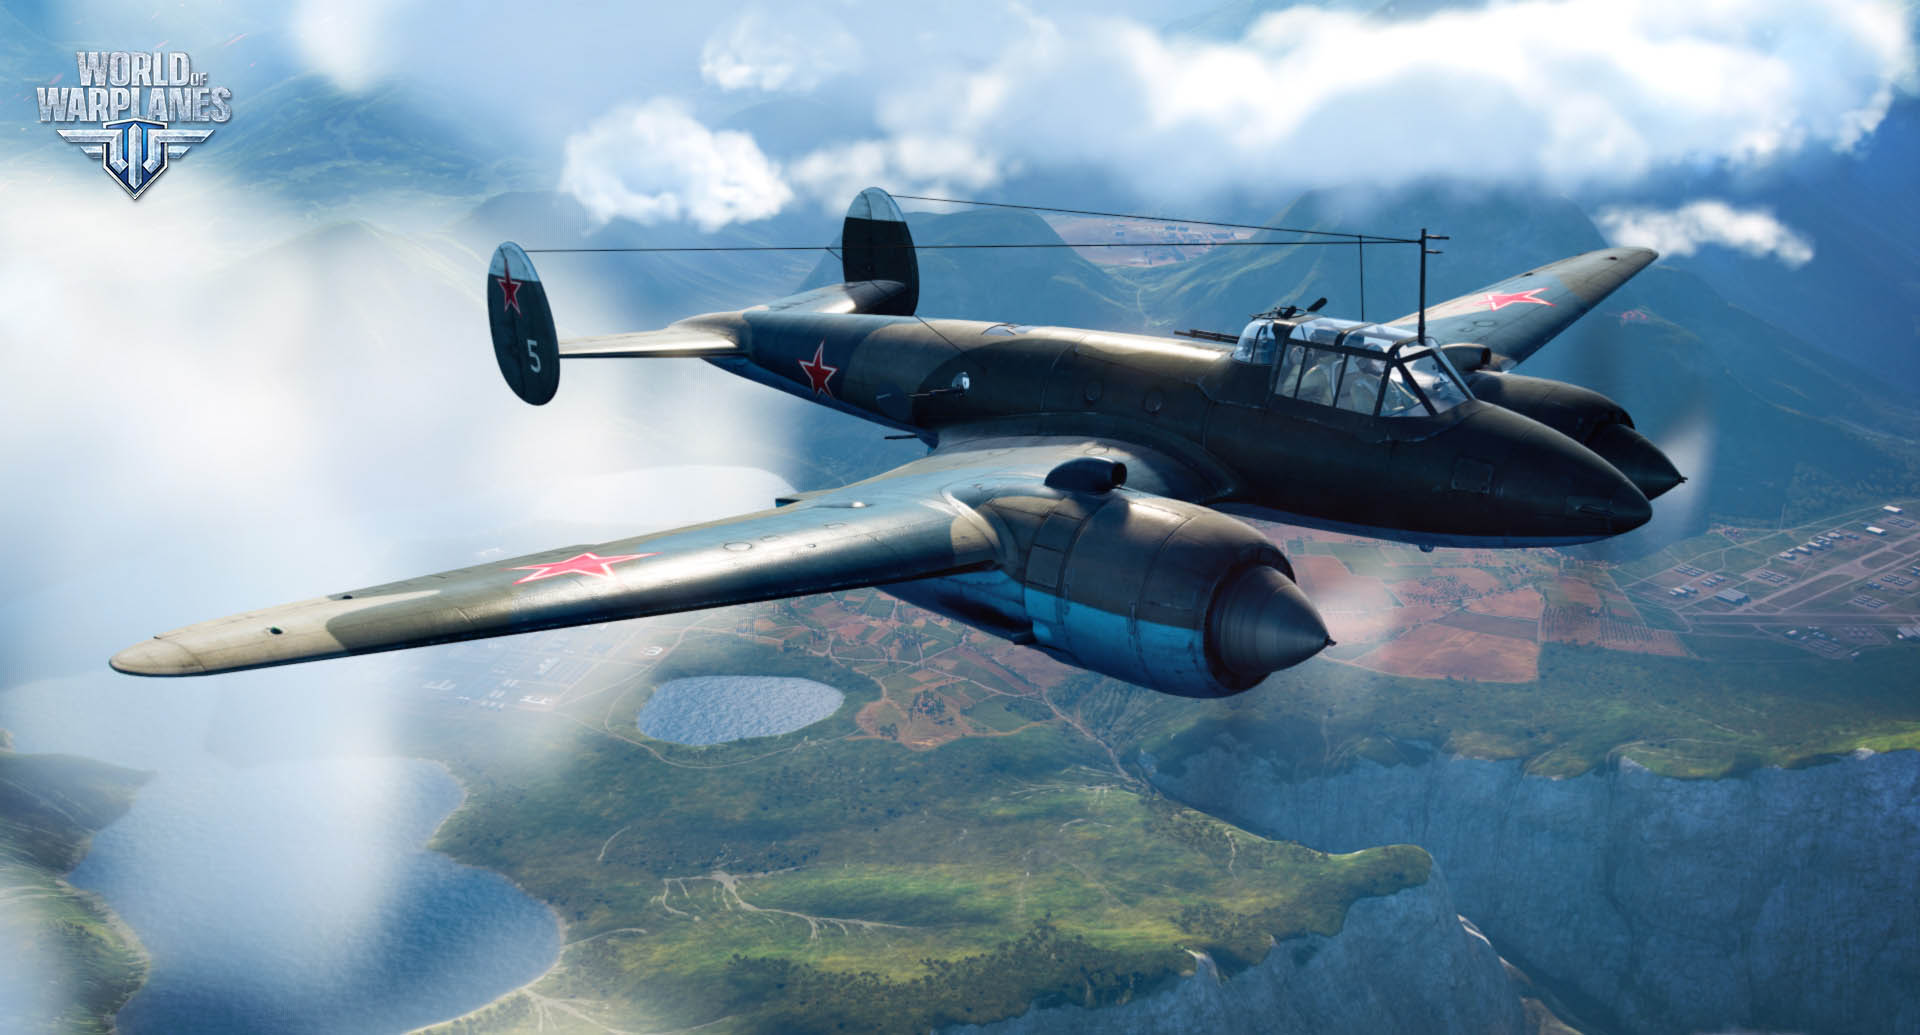 World of Warplanes - USSR BOMBER